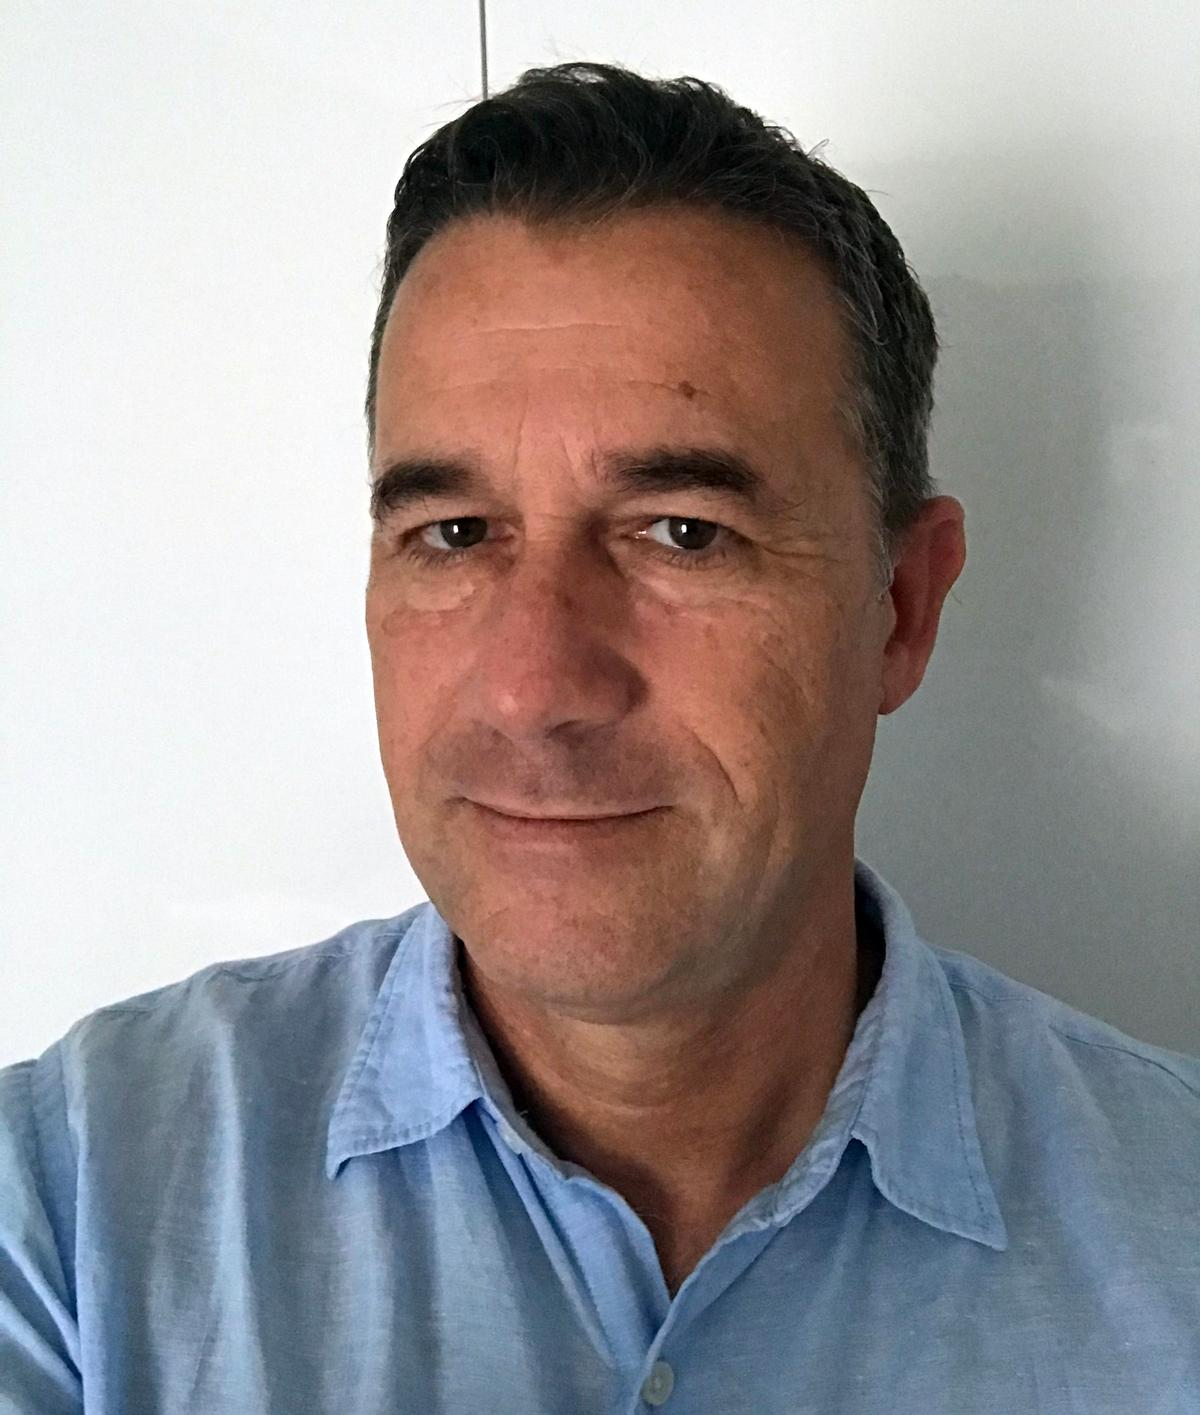 Michel Somford has been appointed director of European sales for Core Health & Fitness